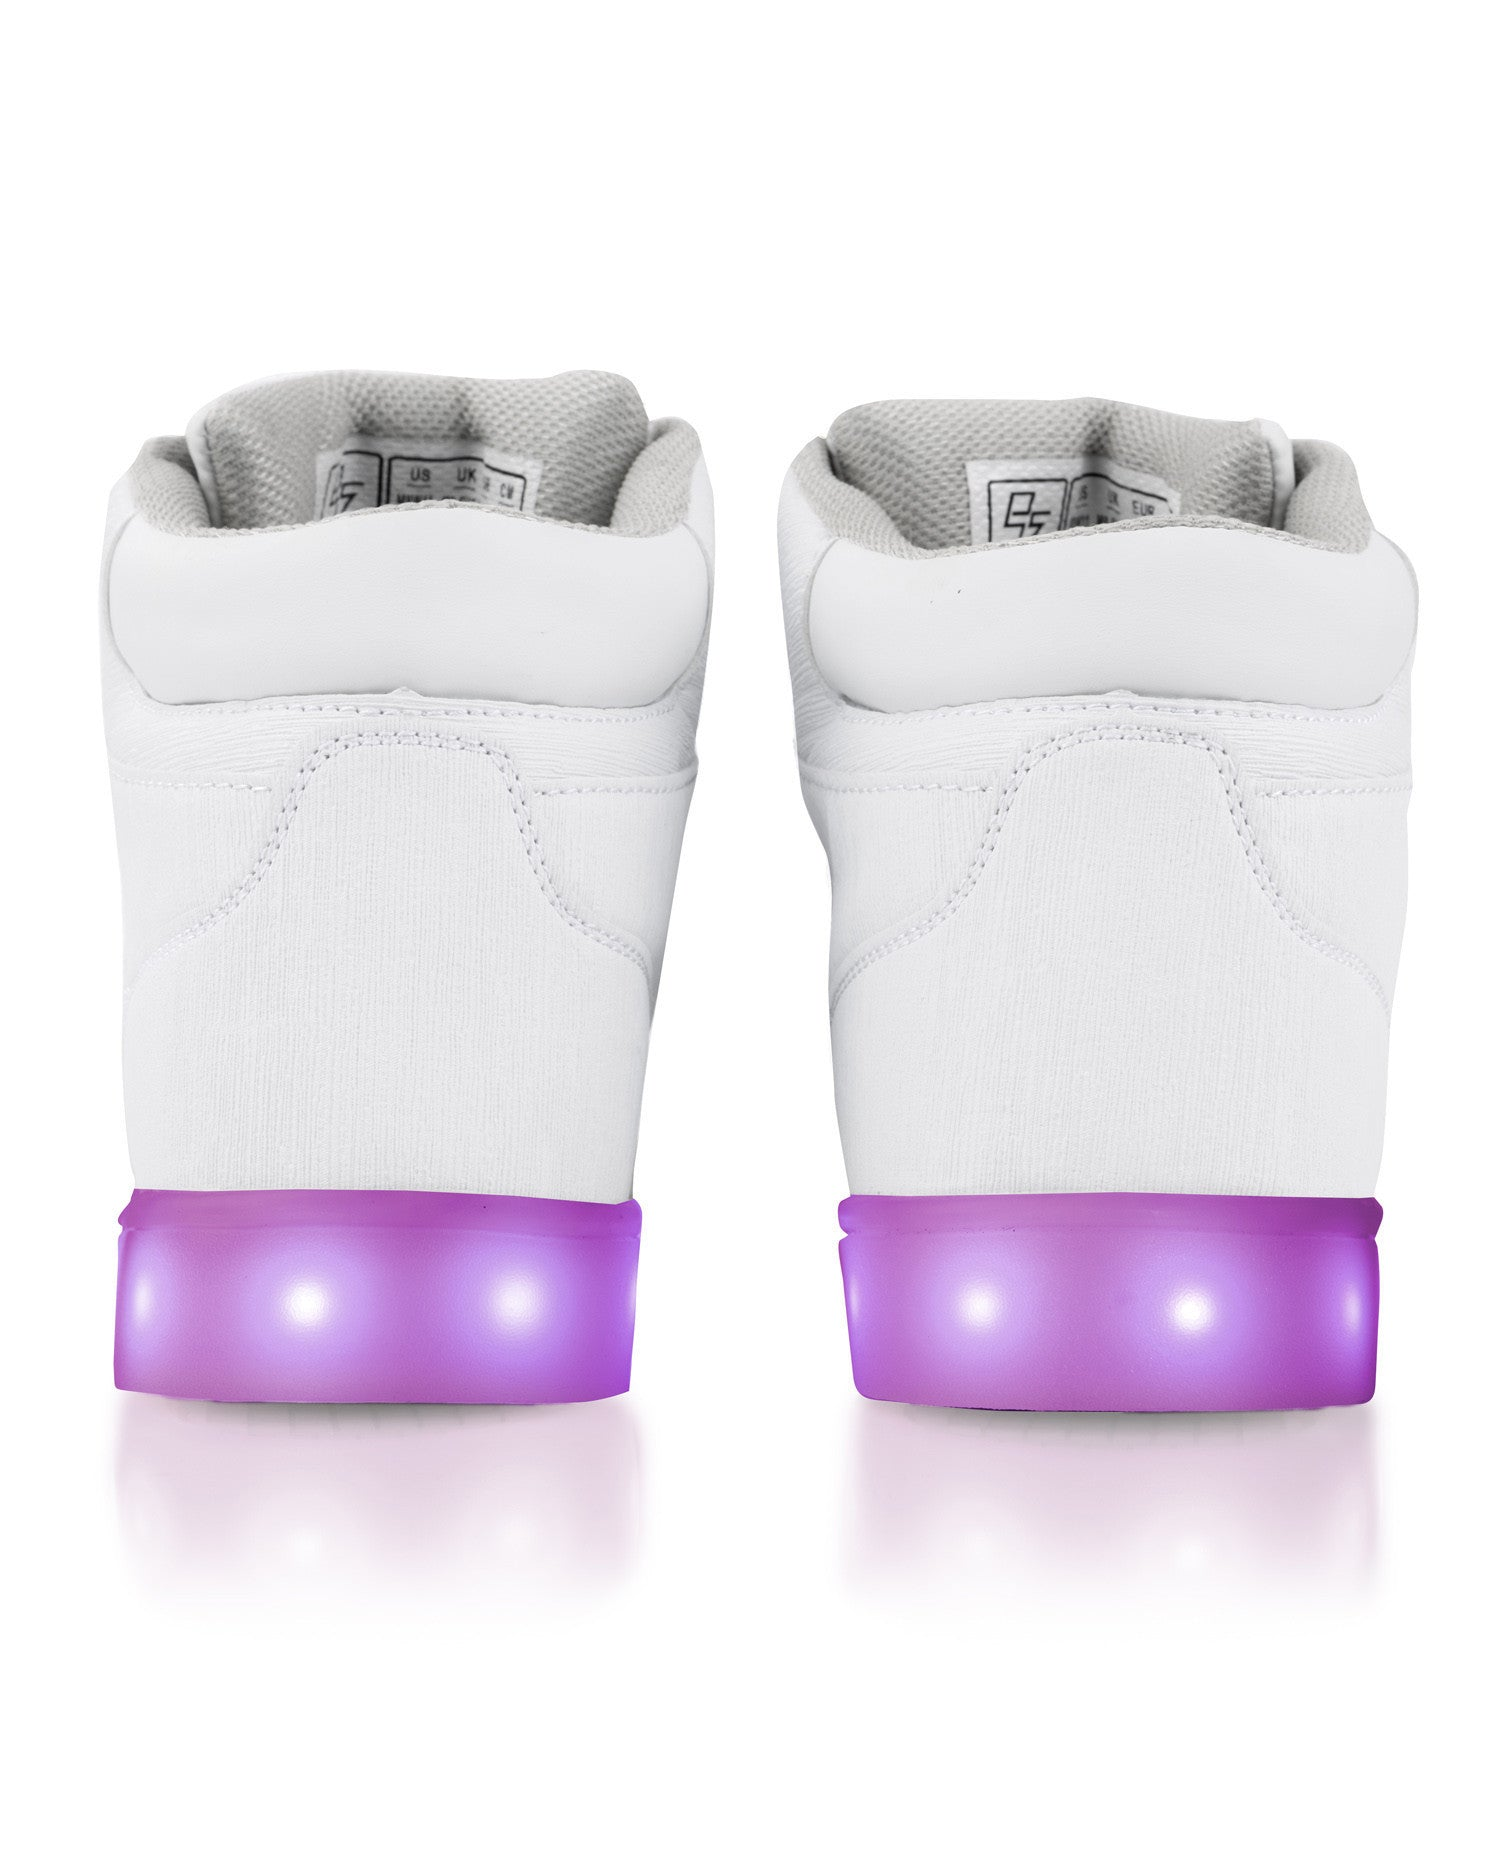 J-Walker - Light Lynk Shoes ( White Leather ) - Electric Styles | World's Number 1 Light Up Shoe Store - {product_type}} -  - 5